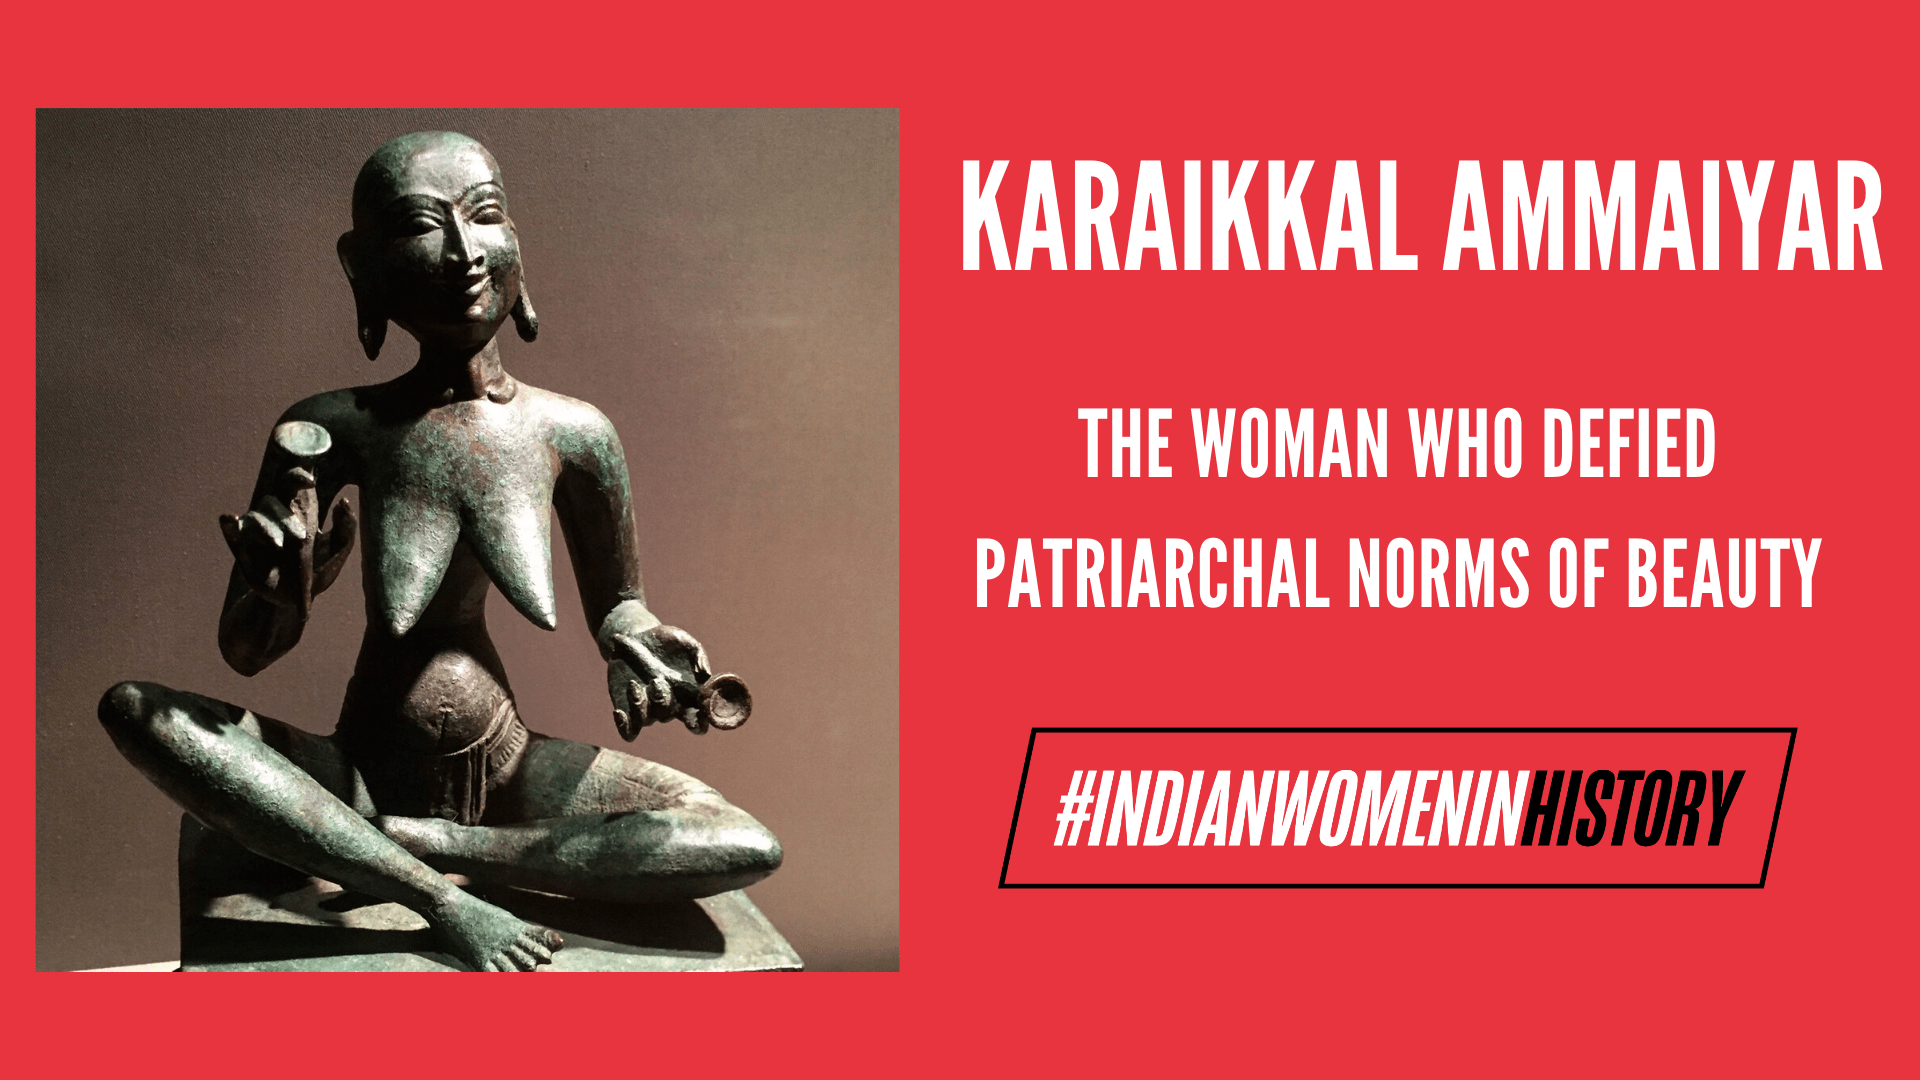 Karaikkal Ammaiyar: The Woman Who Defied Patriarchal Norms Of Beauty |#IndianWomenInHistory